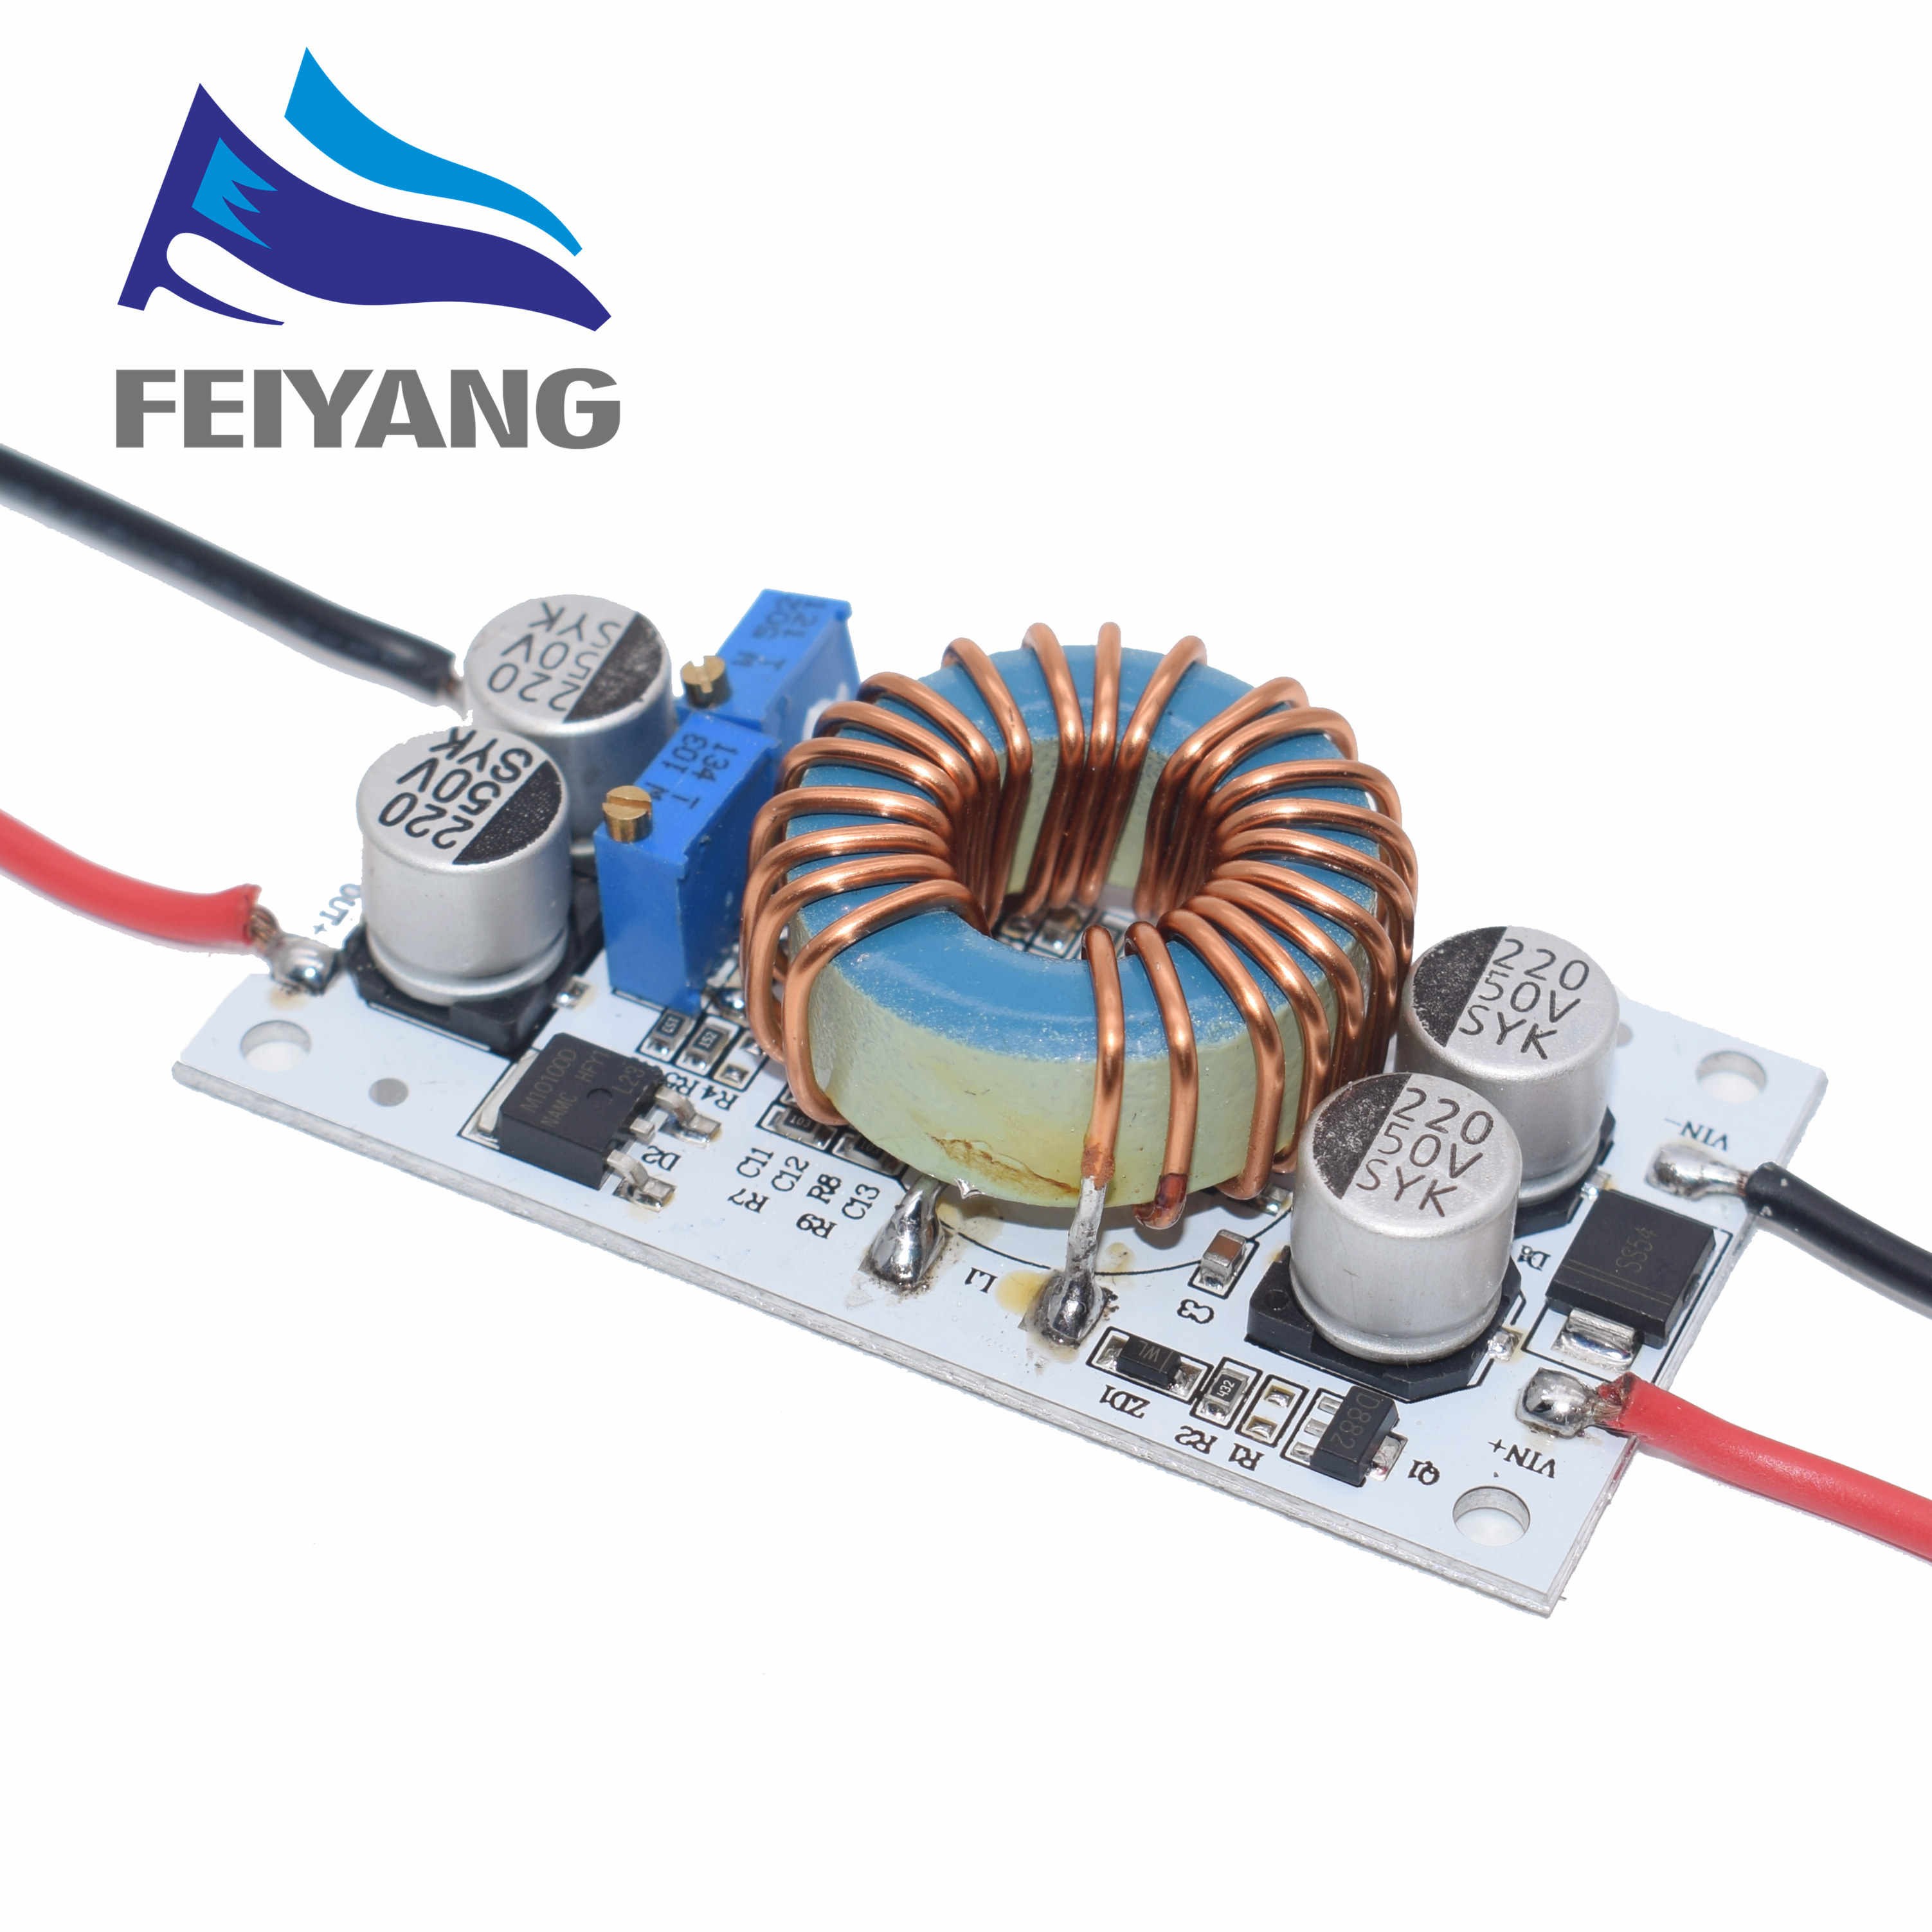 DC-DC Boost Converter Konstan Saat Ini Ponsel Power Supply 10A 250W LED Driver